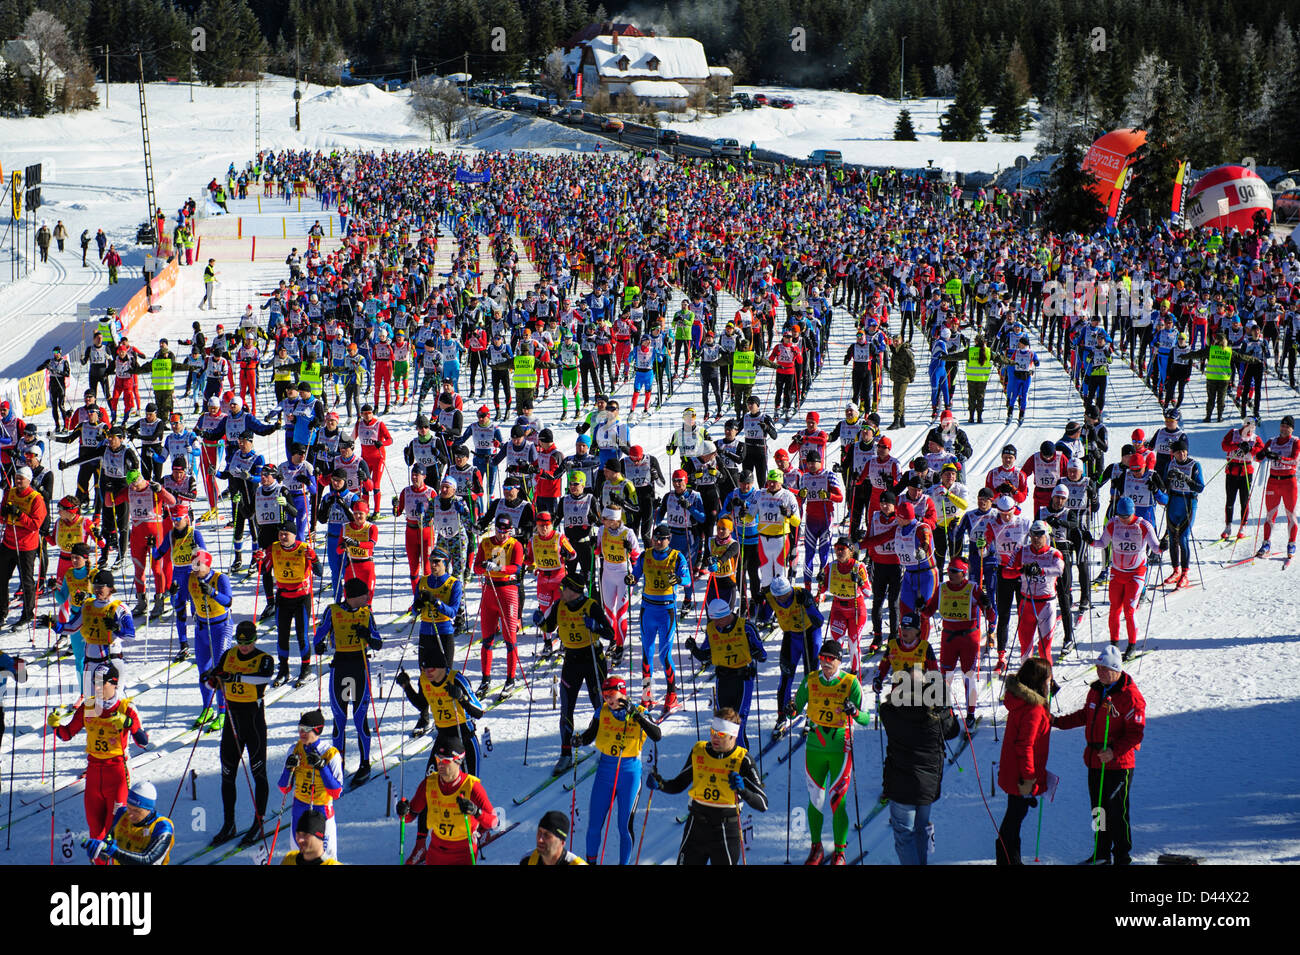 A general view of the participants of the Bieg Piastow cross-country race, Jakuszyce, Poland. - Stock Image